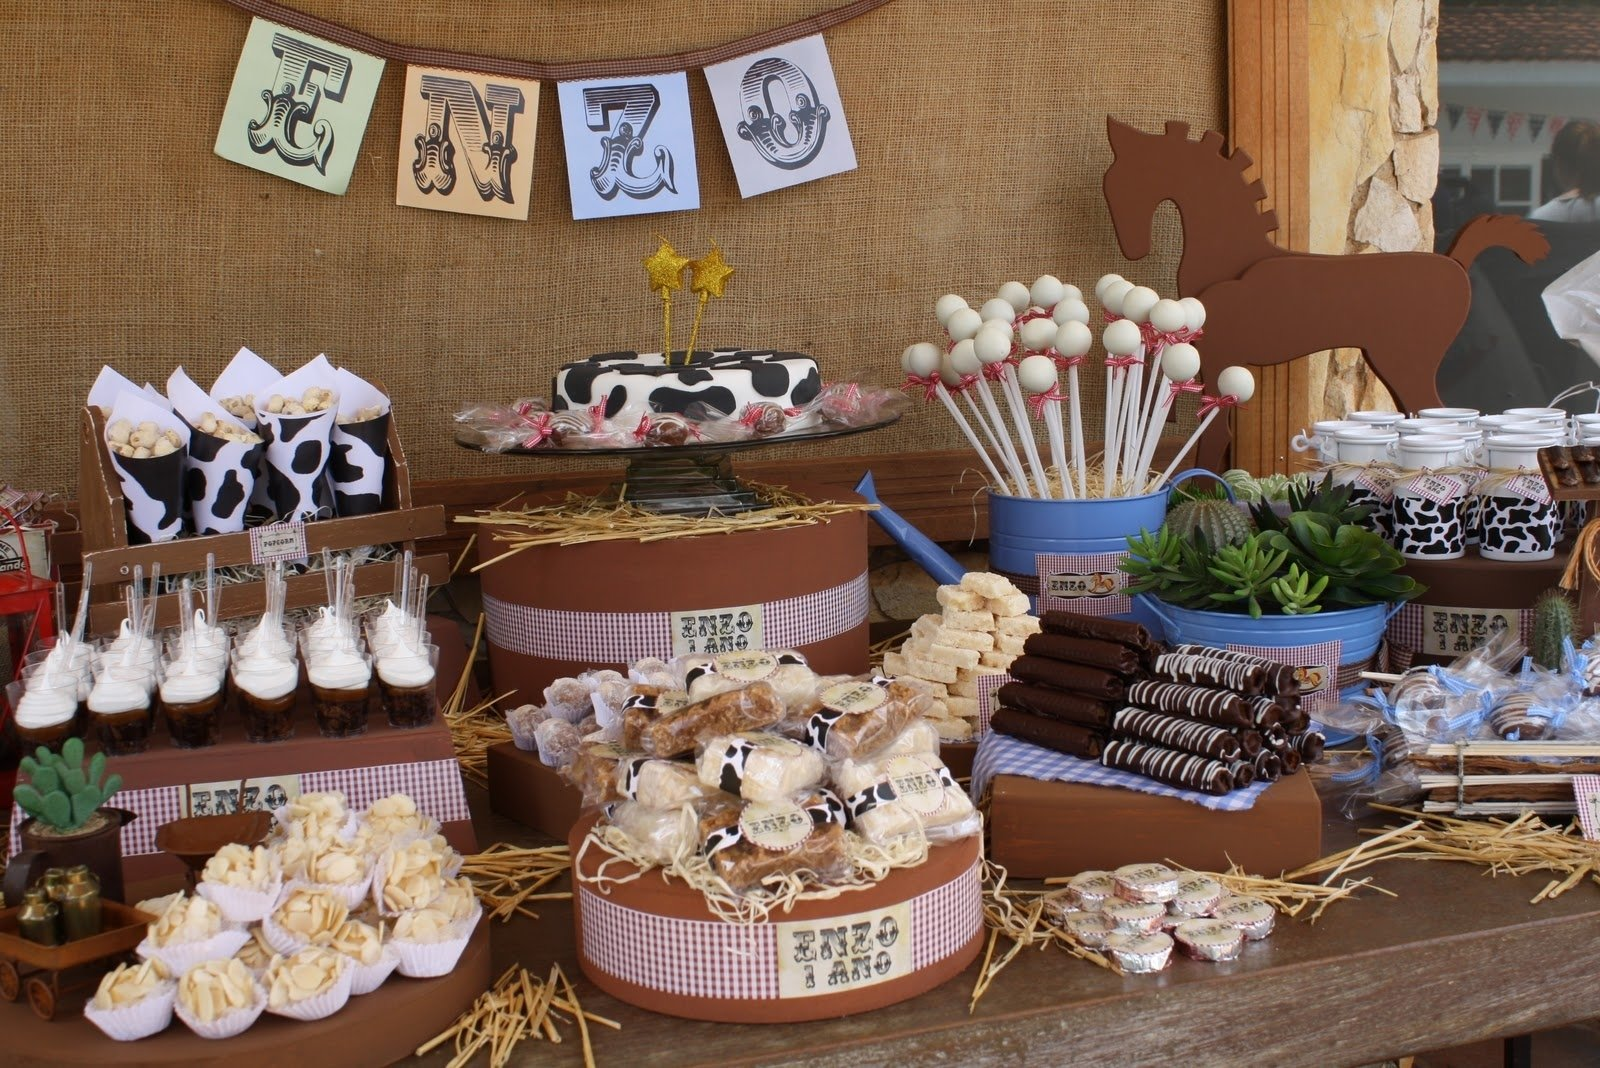 10 Unique Country Themed Baby Shower Ideas baby shower western baby shower ideas fresh decoration western 2021